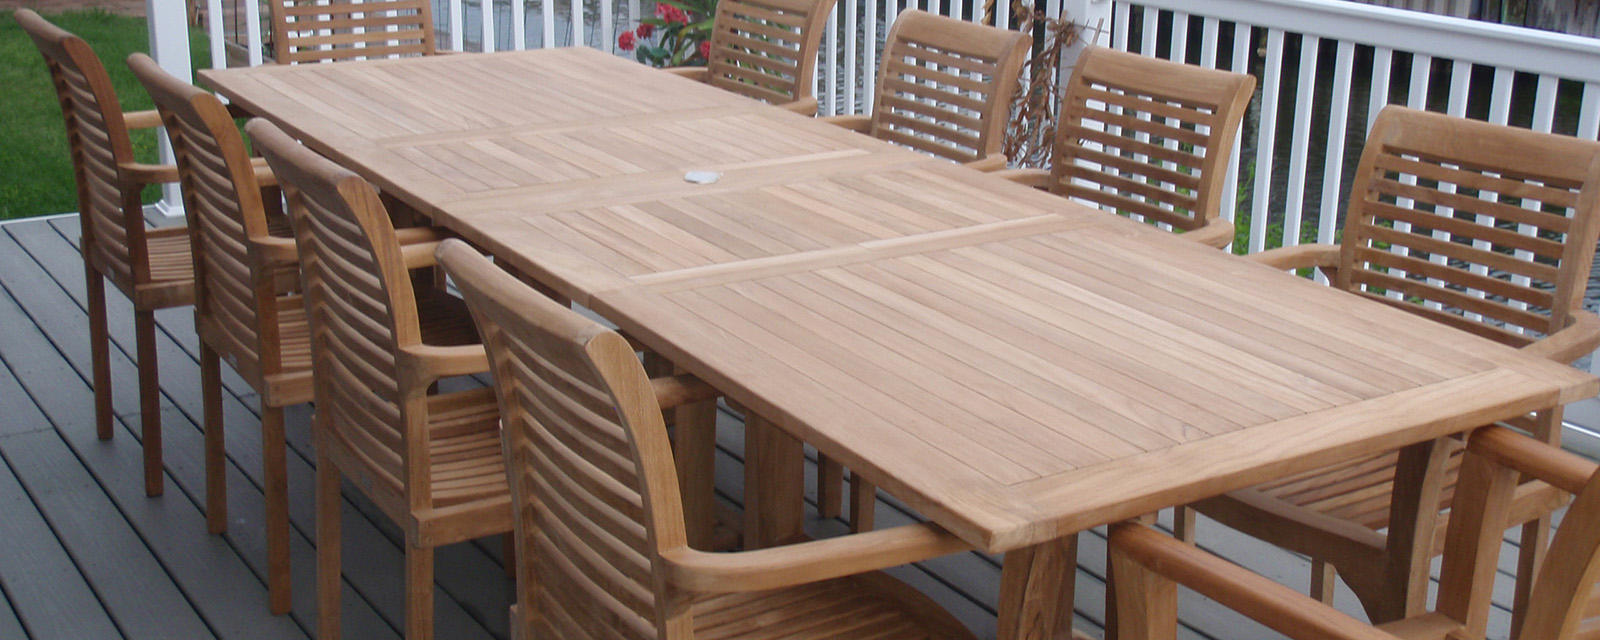 Windsor Teak Furniture Buckingham Extension Table